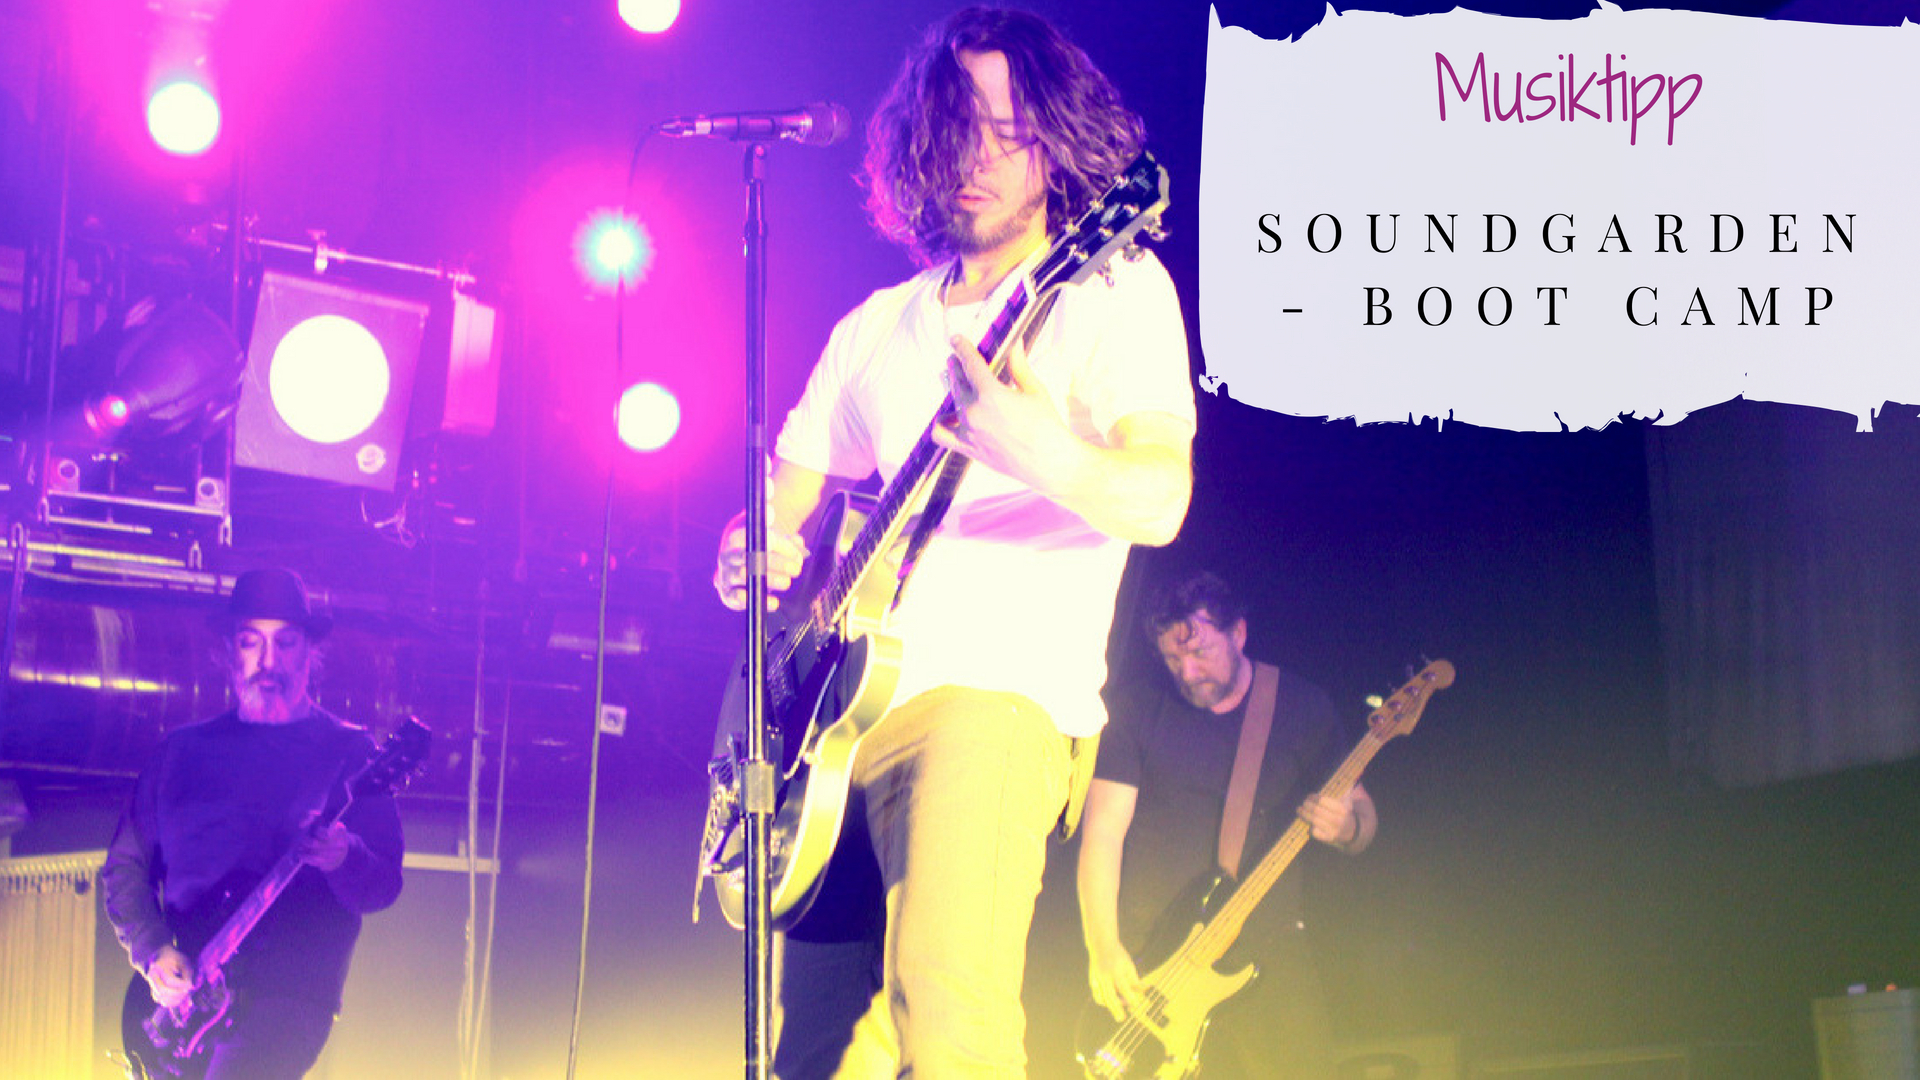 Soundgarden Boot Camp Musiktipp Titelbild